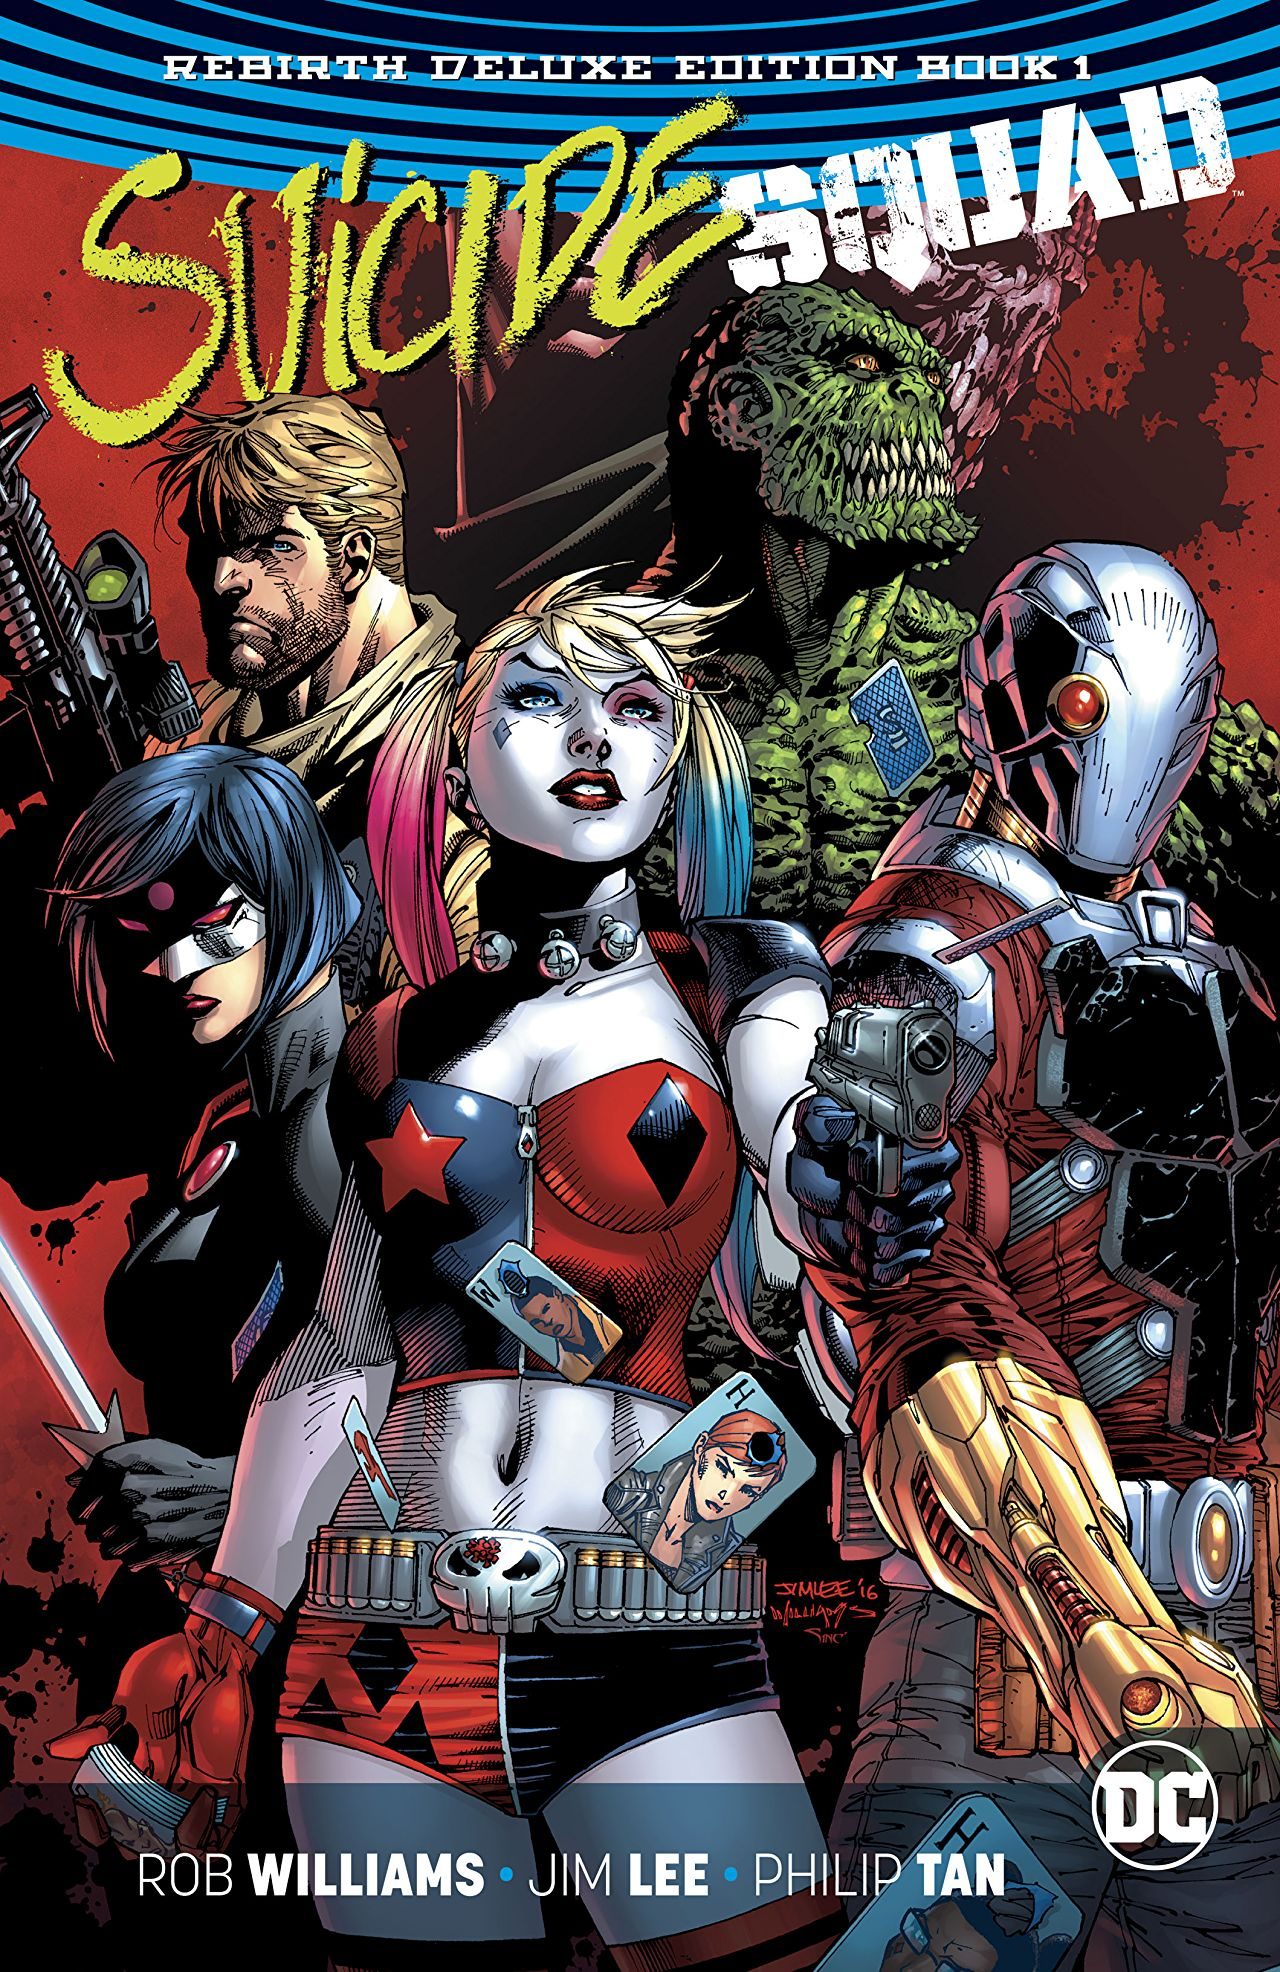 Story:  Rob Williams  Art:  Jim Lee, Philip Tan, Jason Fabok, Ivan Reis, Gary Frank, Stephen Byrne, Carlos D'Anda, Christian Ward, Giuseppe Camuncoli  Color:  Alex Sinclair, Brad Anderson, Marcelo Maiolo, Elmer Santos, Stephen Byrne, Gabe Eltaeb, Christian Ward, Hi-Fi  Letters:  Nate Piekos of Blambot®, Pat Brosseau, Josh Reed, Dave Sharpe  Cover : Jim Lee & Scott Williams & Alex Sinclair  Logo:  Tom Muller